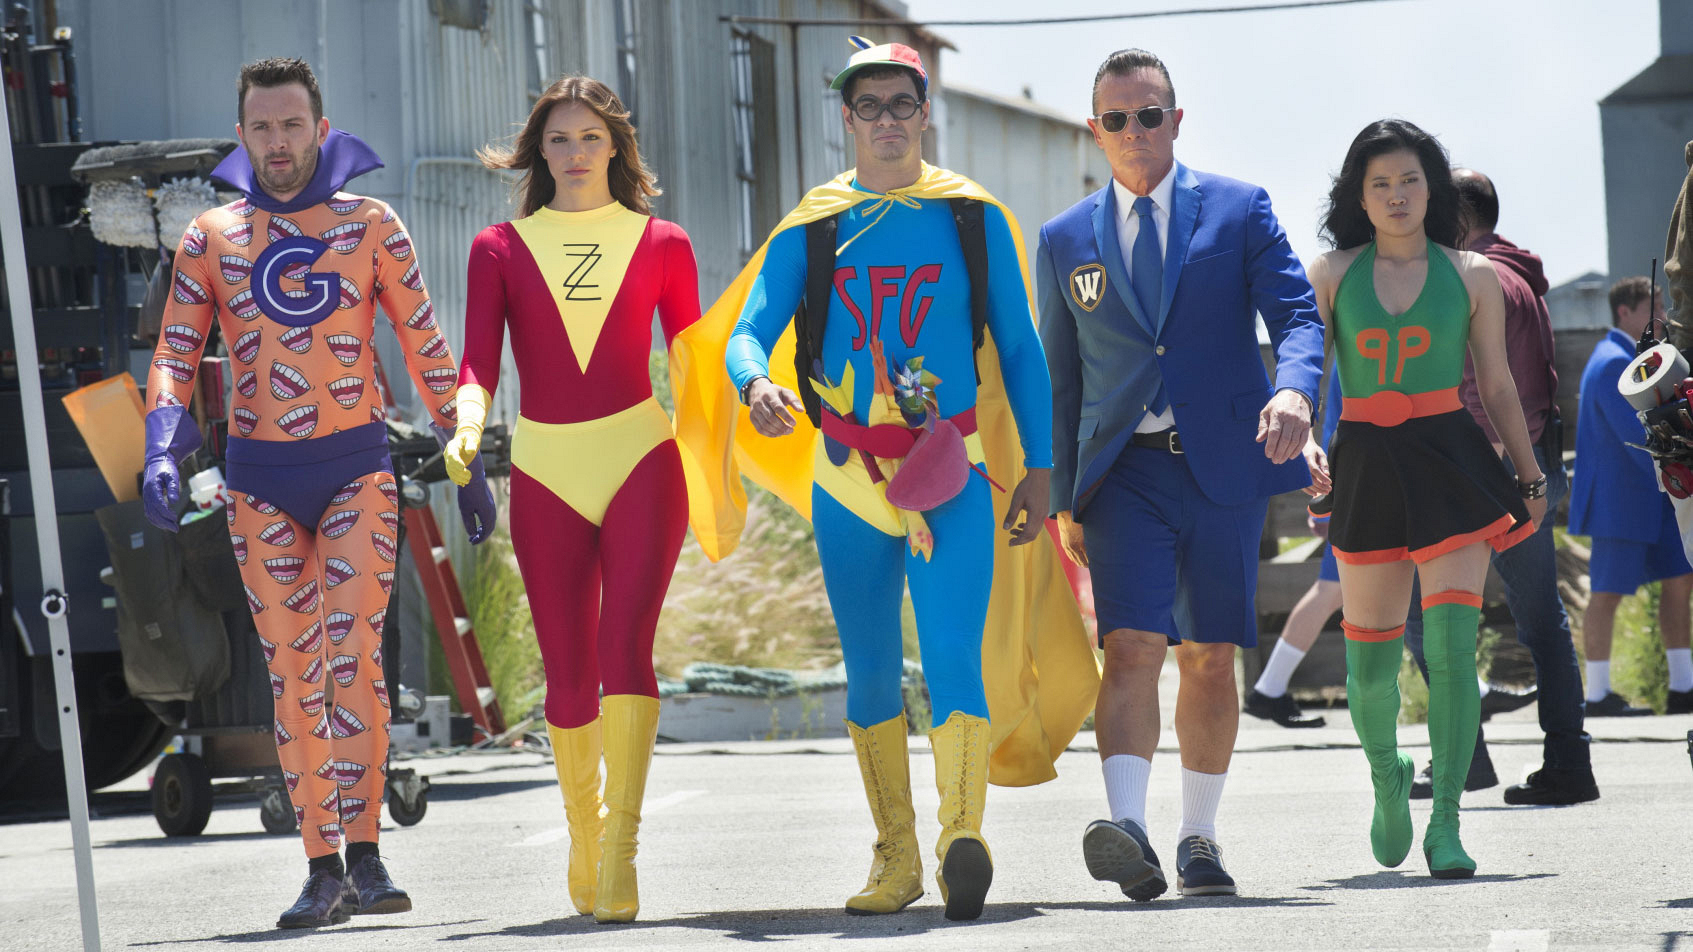 Eddie Kaye Thomas as Toby Curtis, Katharine McPhee as Paige Dineen, Elyes Gabel as Walter O'Brien, Robert Patrick as Cabe Gallo, and Jadyn Wong as Happy Quinn